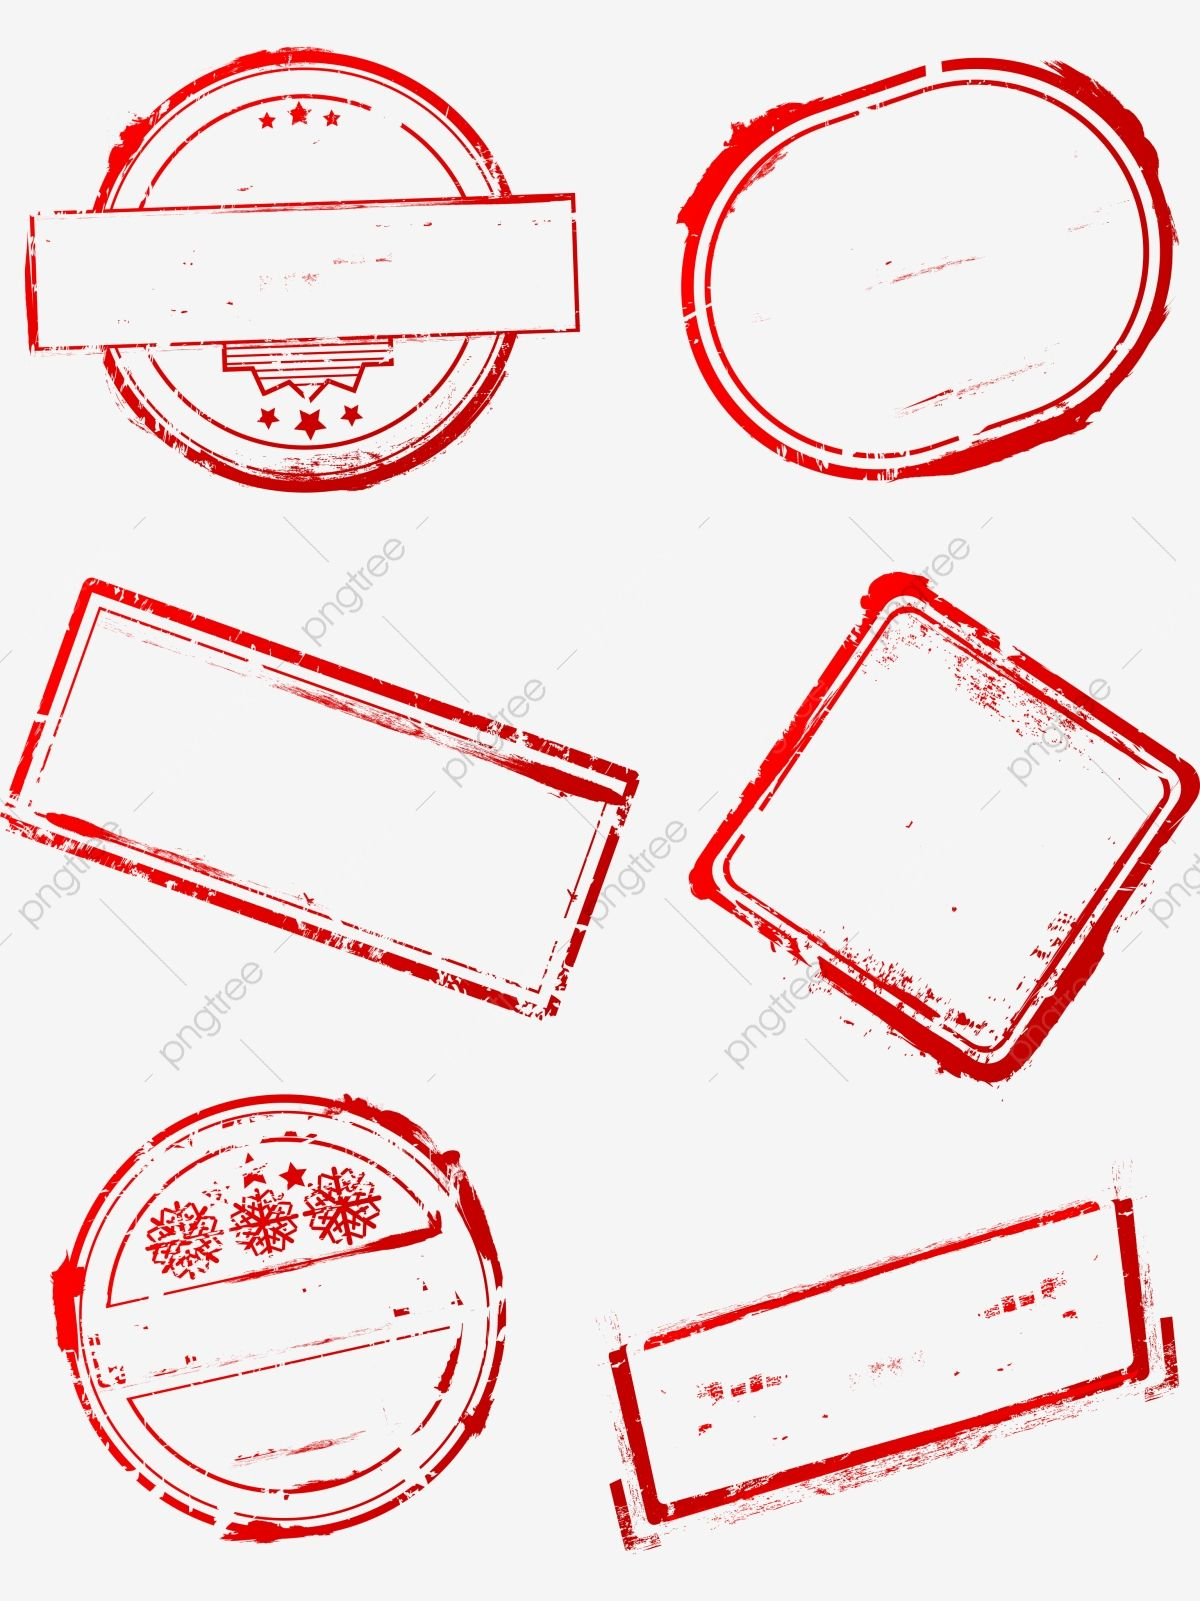 Download This Six Creative Red Seal Border Ai Material Pattern Red Border Stamp Border Border Material Transparent Png Or Stamp Frame Banner Prices Ink Pads